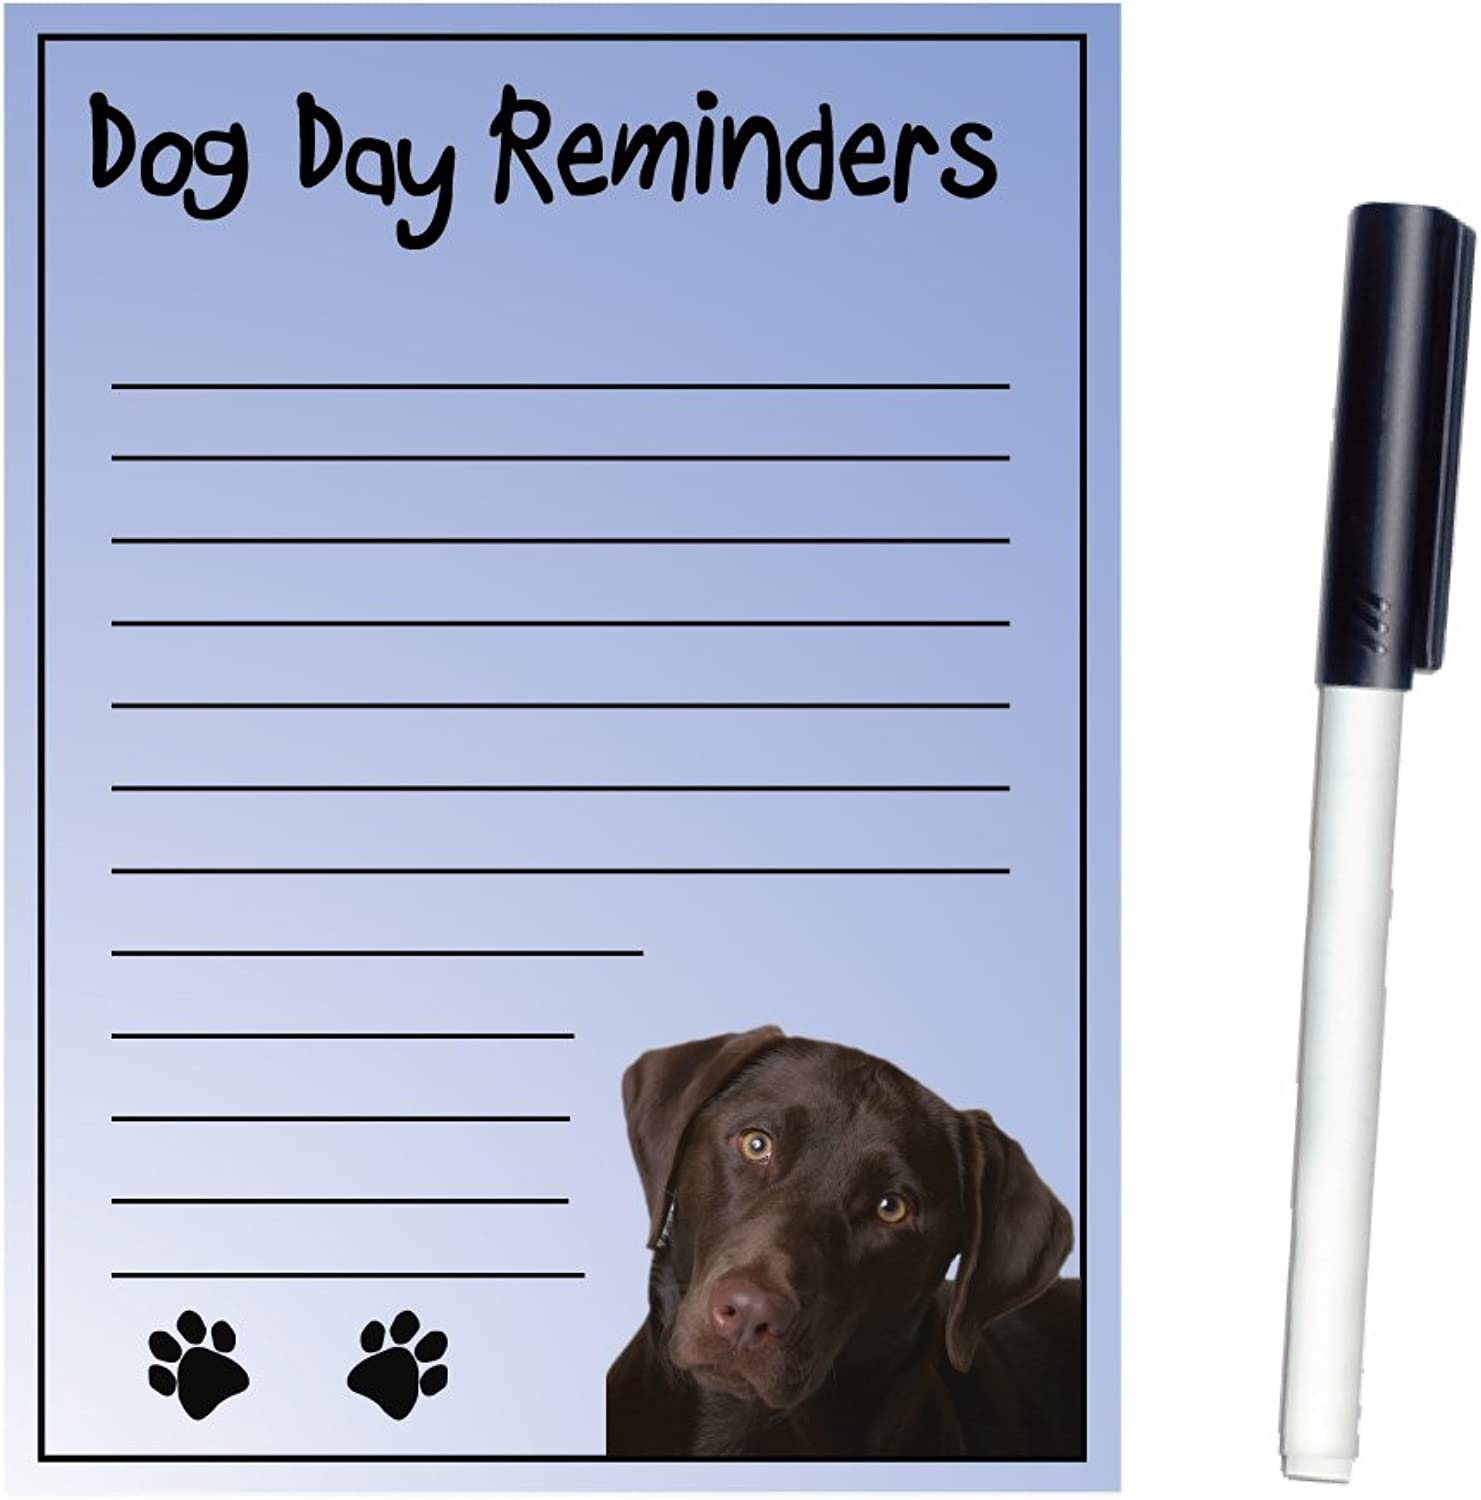 Imagine This Magnetic Dry Erase Board with Dog Day Reminders, Labrador, Chocolate